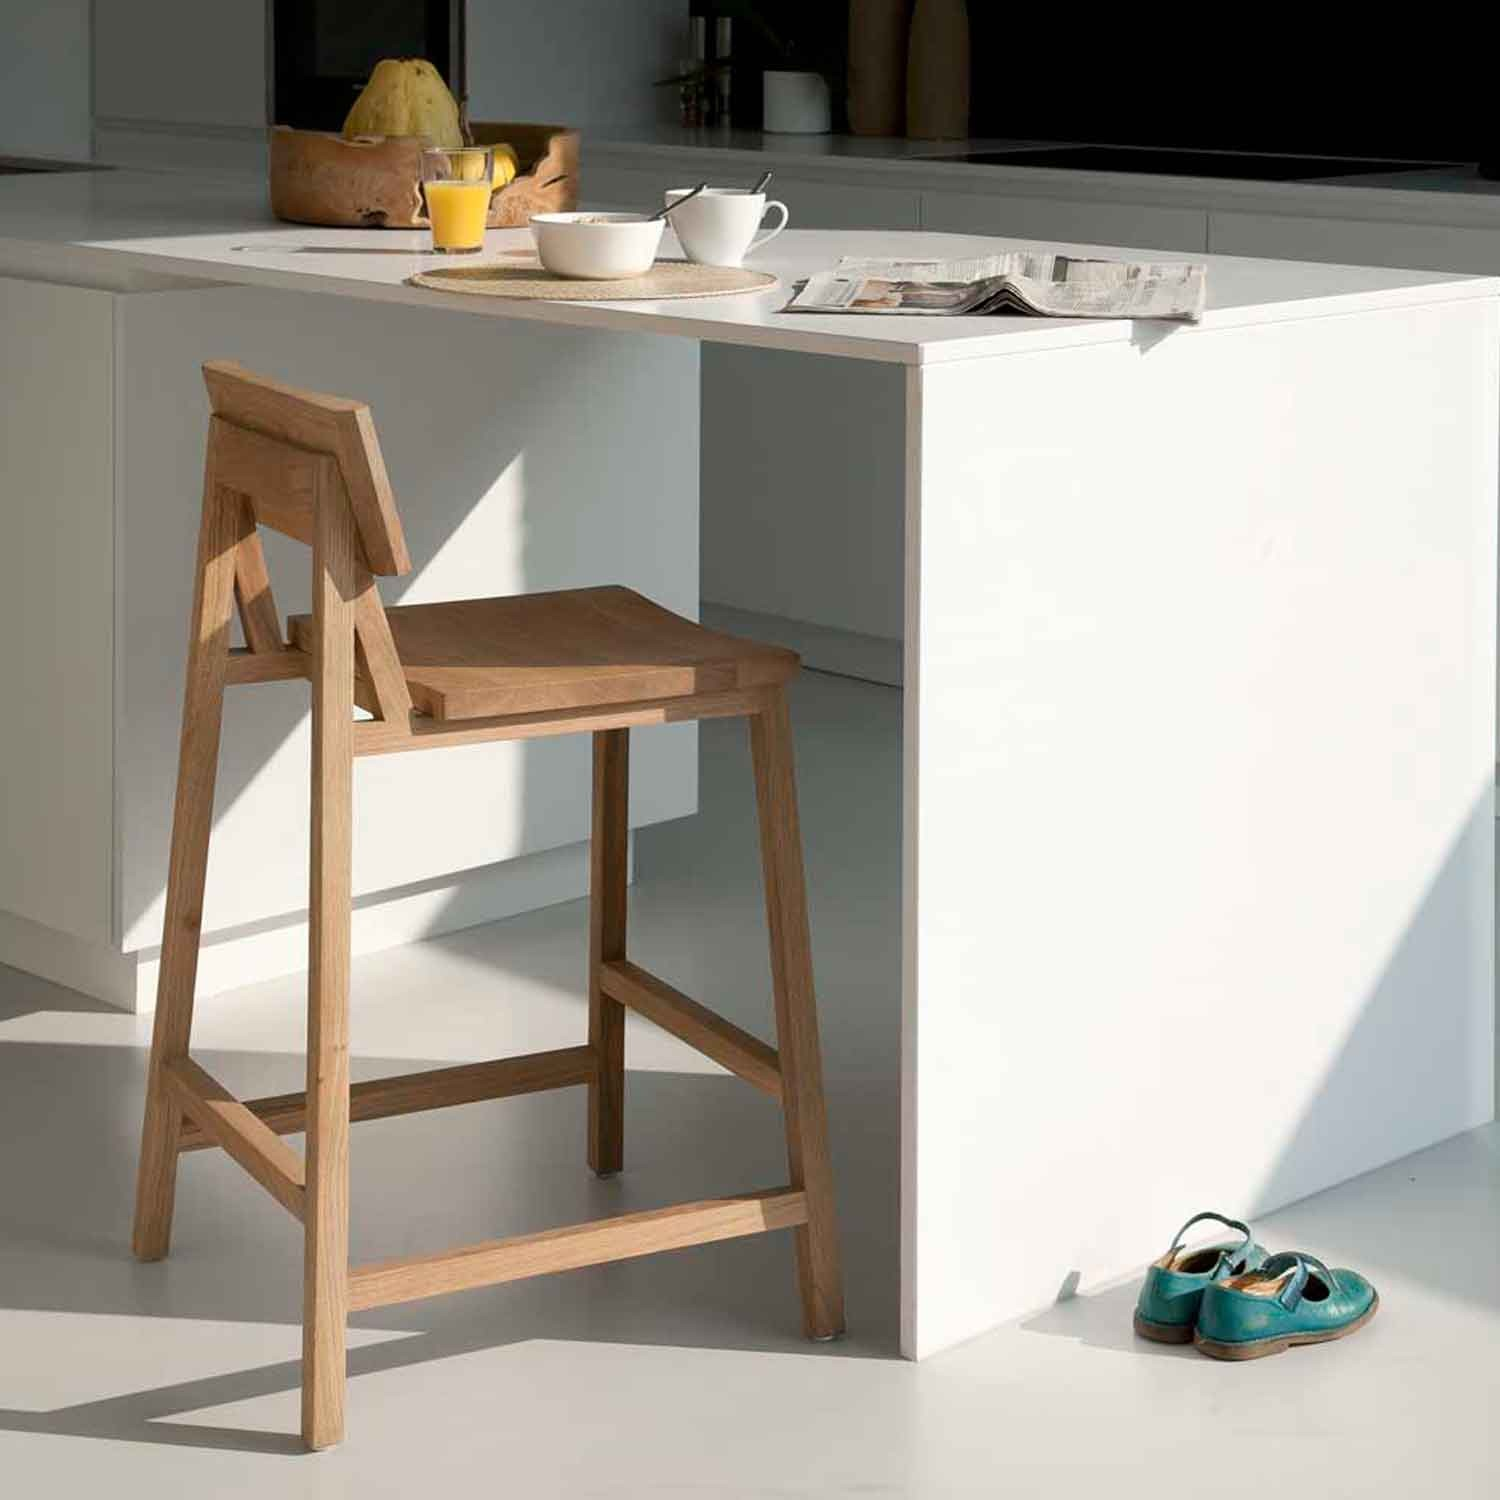 height kitchen counter peninsula target stool island tables for bar stools